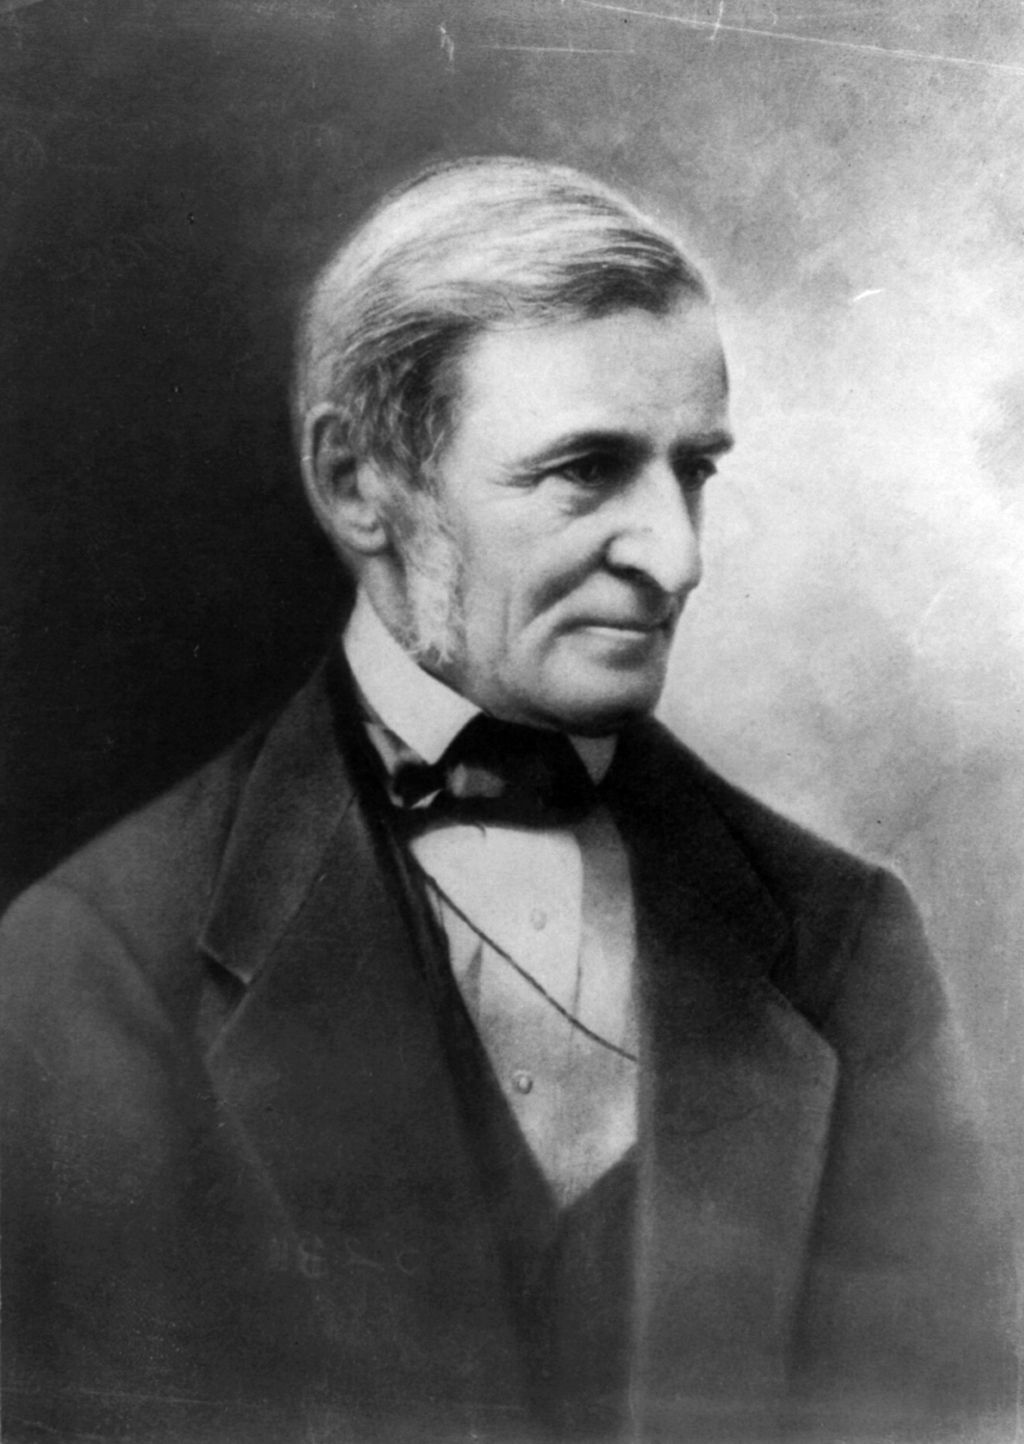 Ralph Waldo Emerson image is available from the United States Library of Congress's Prints and Photographs division. Public Domain